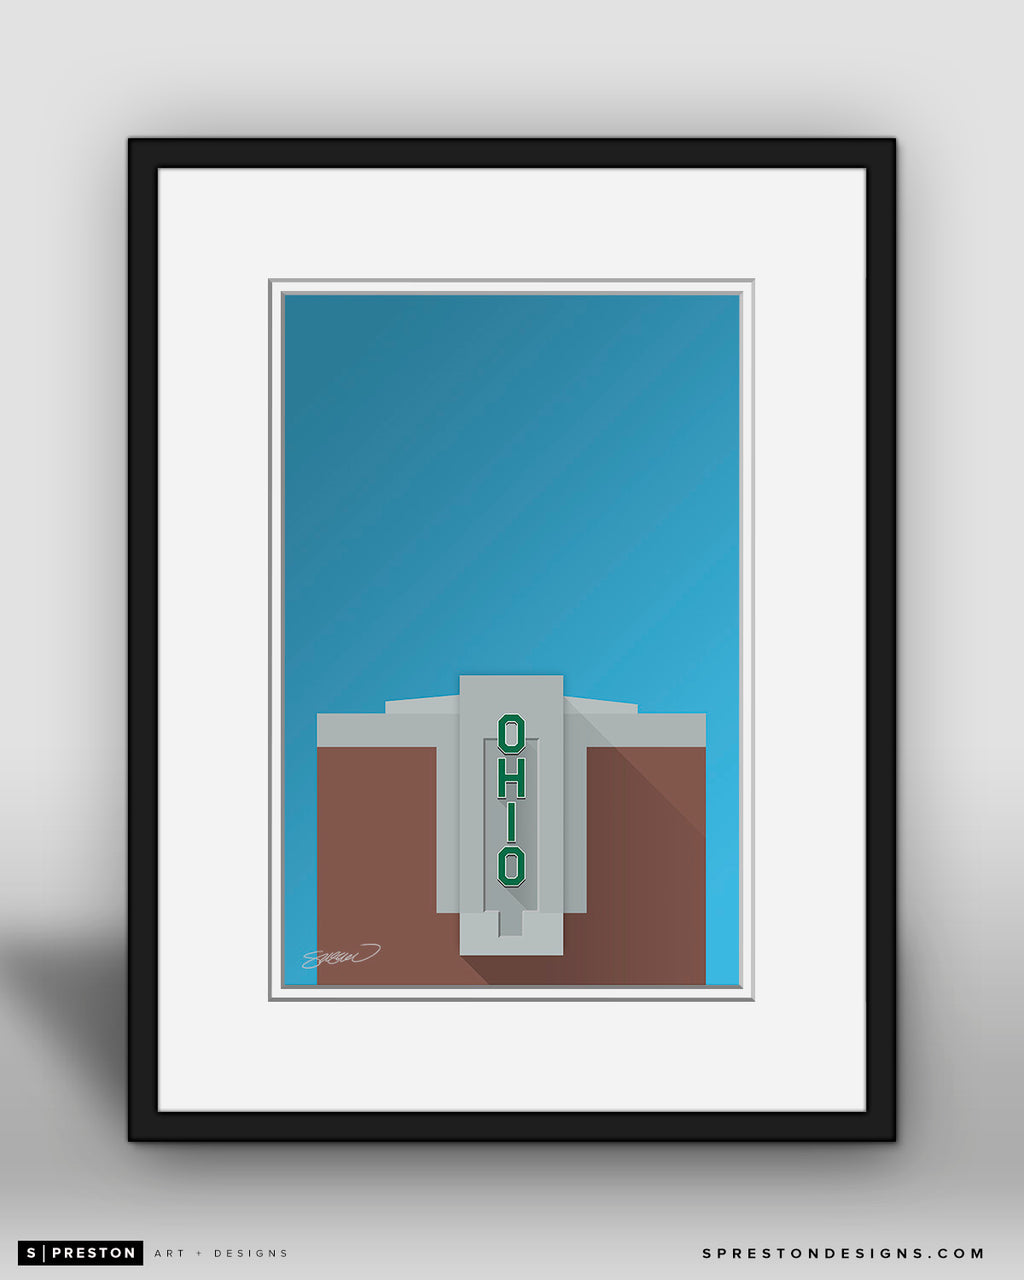 Minimalist Peden Stadium - Ohio University - S. Preston